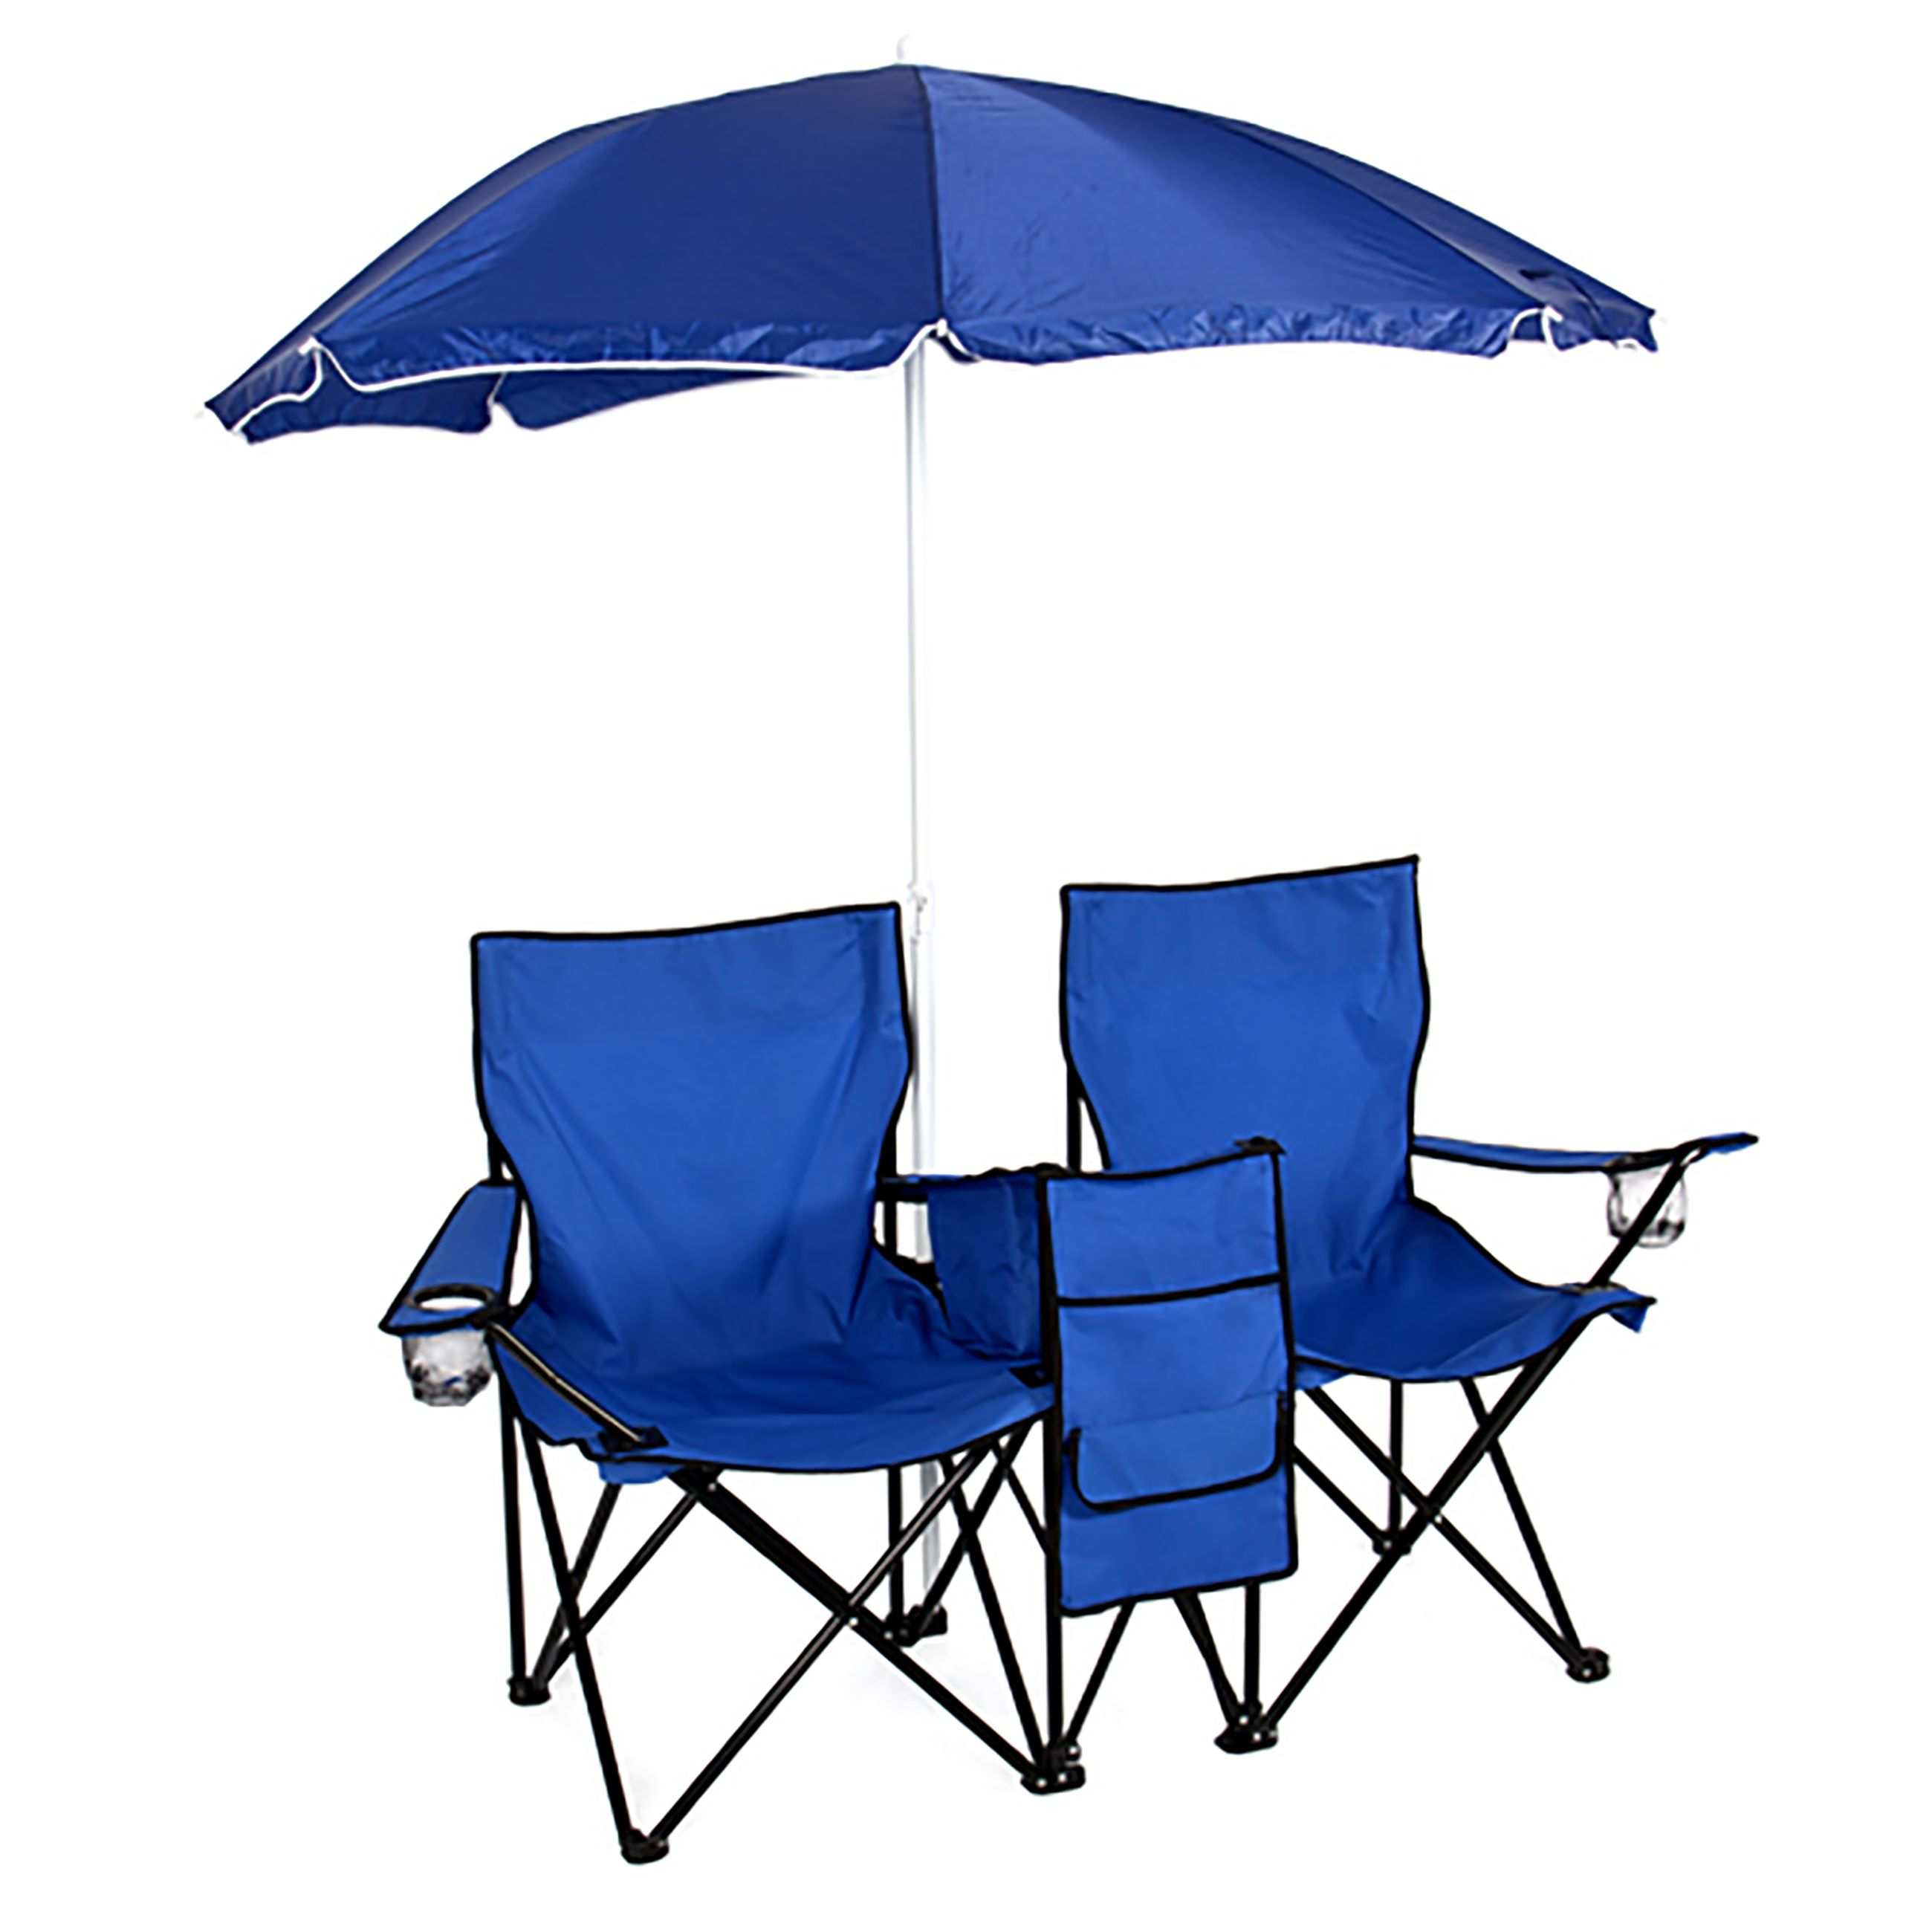 products intended interesting wicker with choice regarding rattan best ideas for patio furniture planter hd outdoor umbrella table